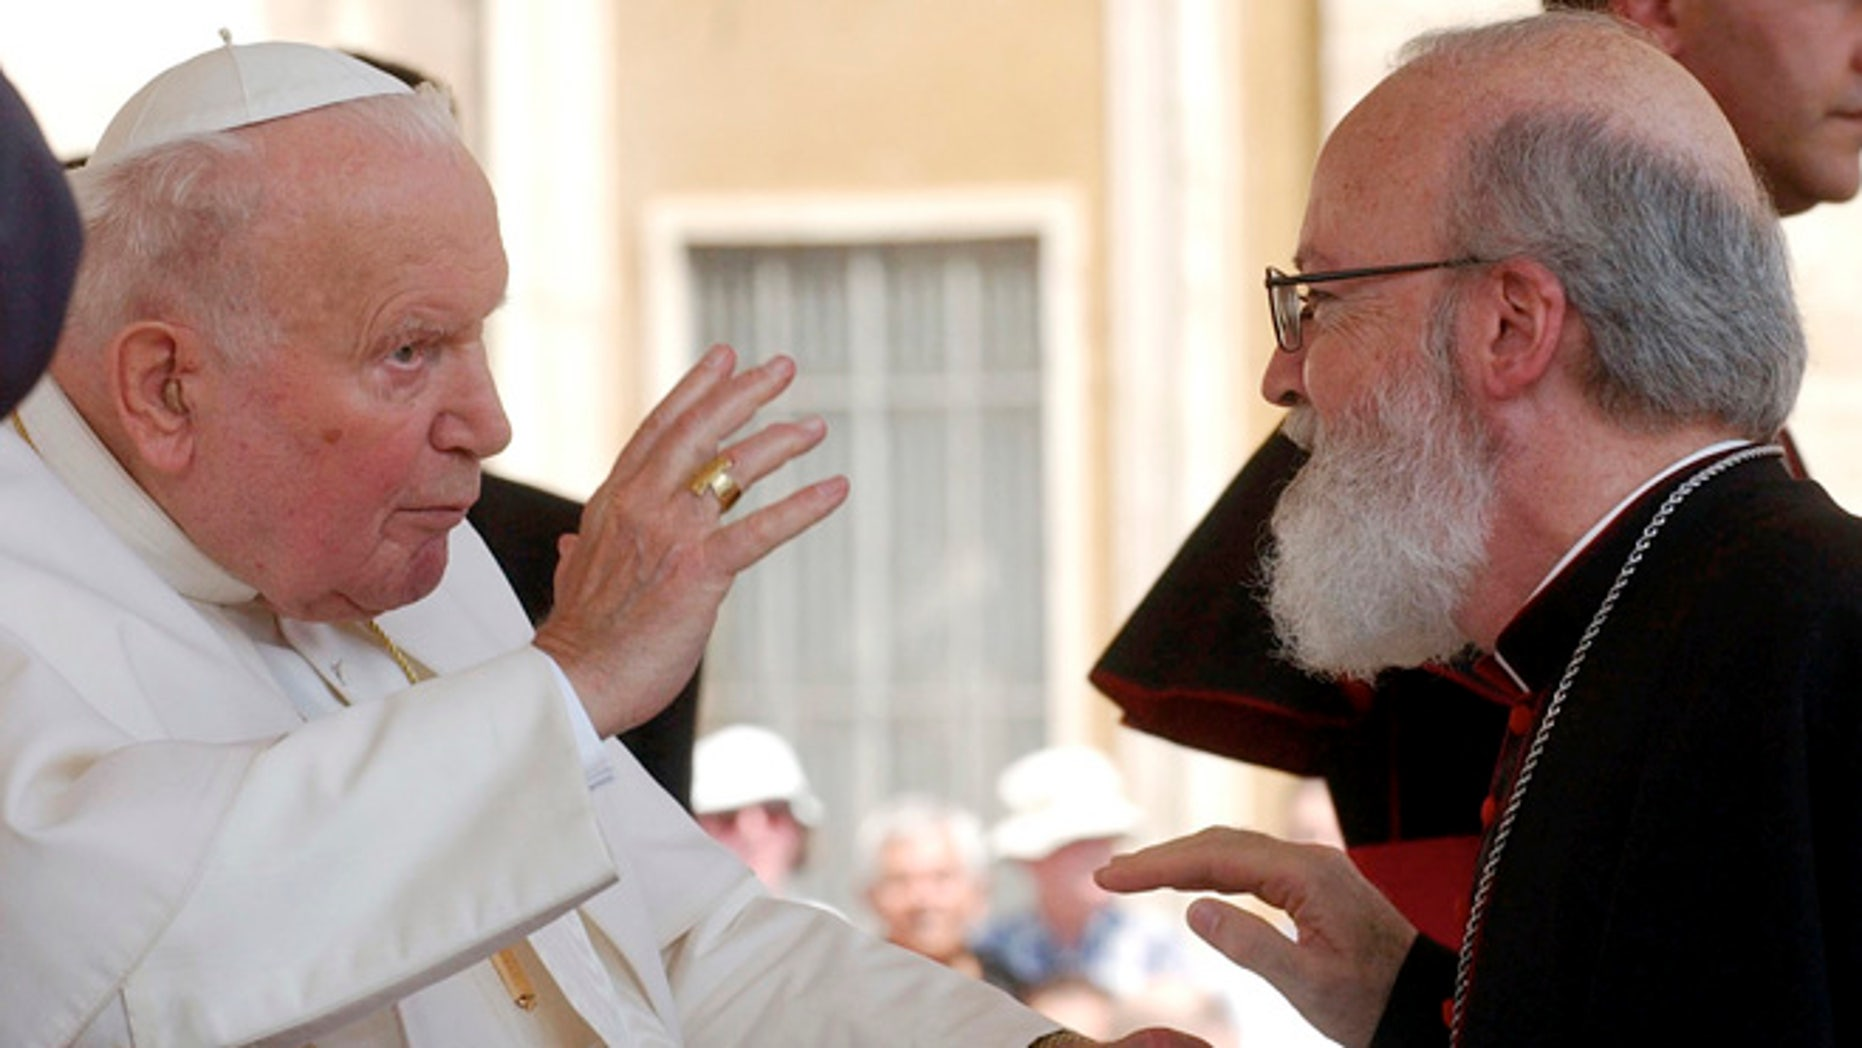 """In this June 30, 2004, file photo, Pope John Paul II blesses Msgr. Sean Patrick O'Malley, Archbishop of Boston, during the weekly open-air general audience in St. Peter's square at the Vatican.  Among the eight cardinals Pope Francis chose as his new """"kitchen cabinet,"""" only one is from North America: Boston Cardinal Sean O'Malley. The panel of cardinals has planned to meet at the Vatican for the first time Oct. 1, 2013."""